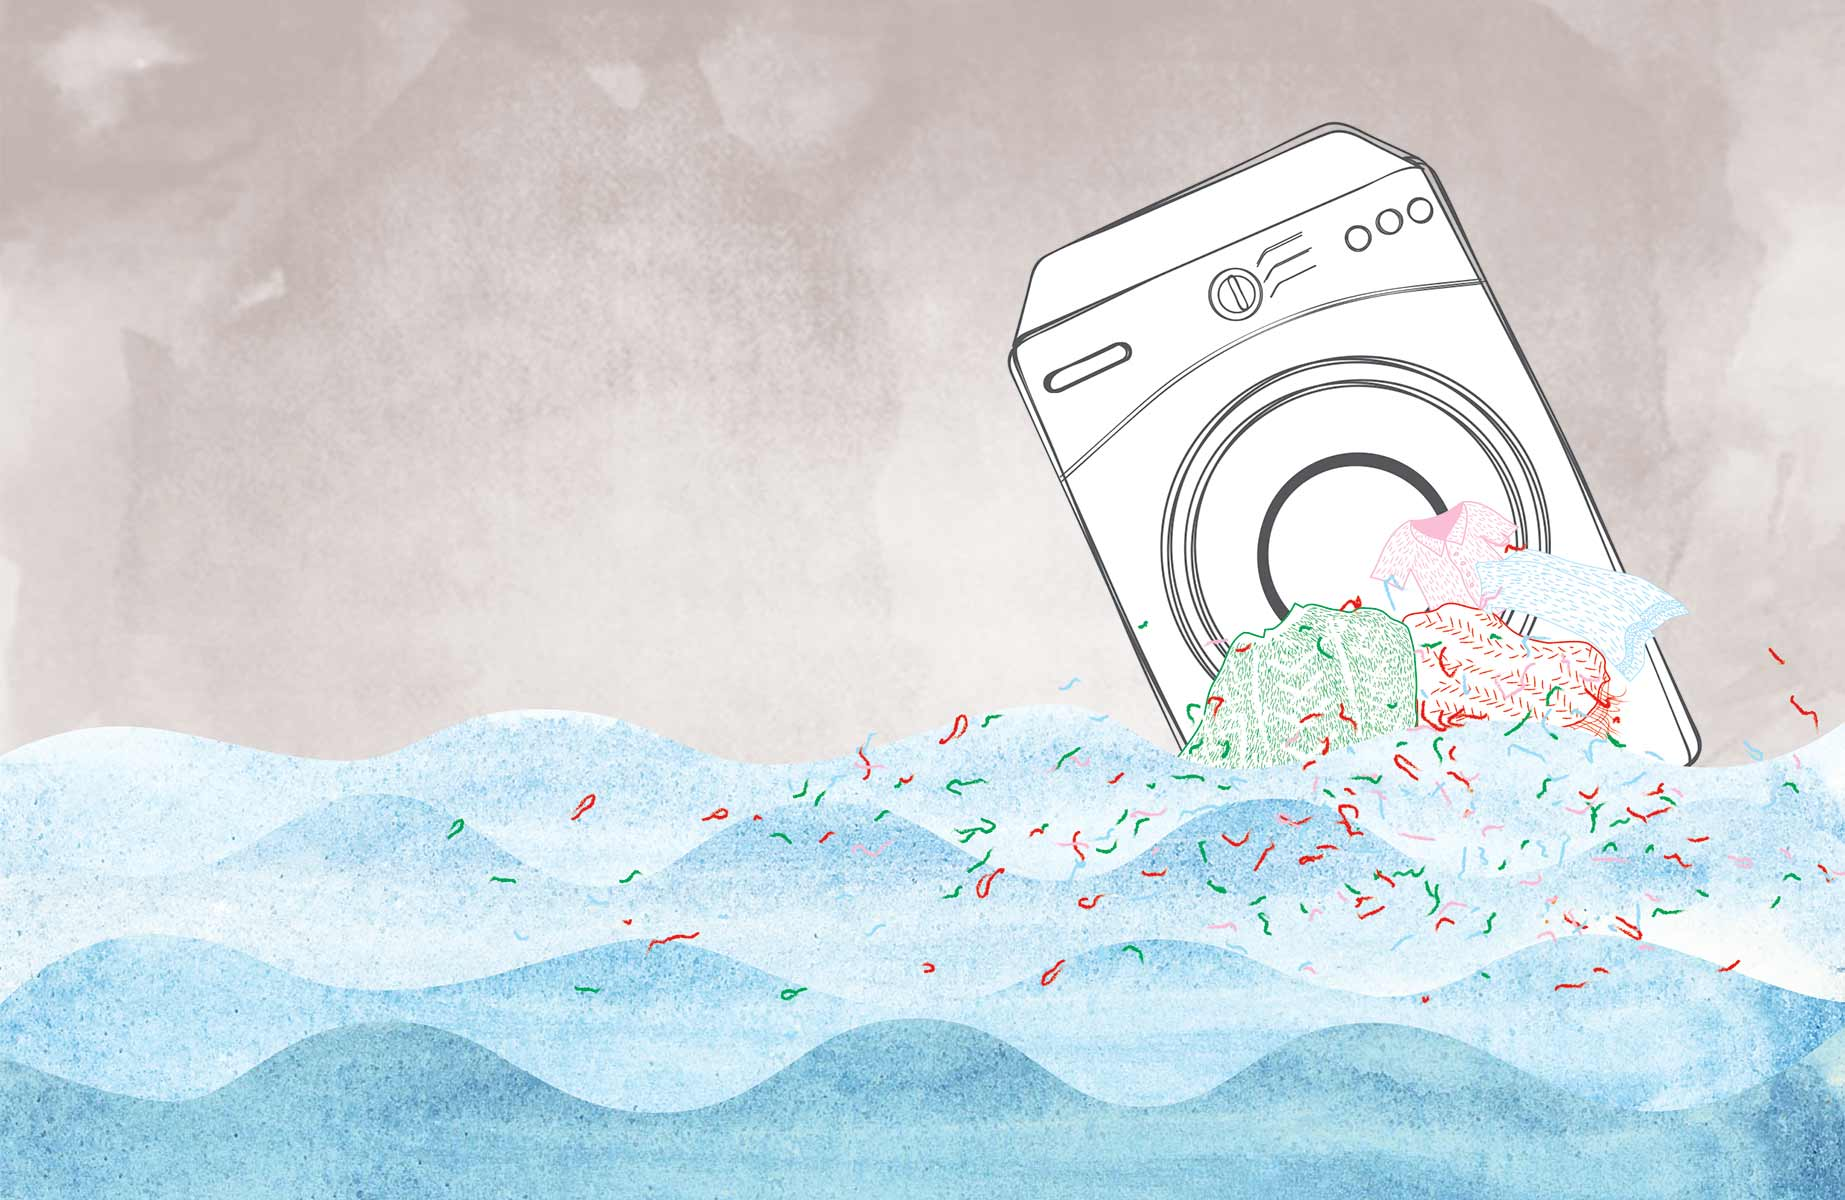 washing machine in the sea (illustration)